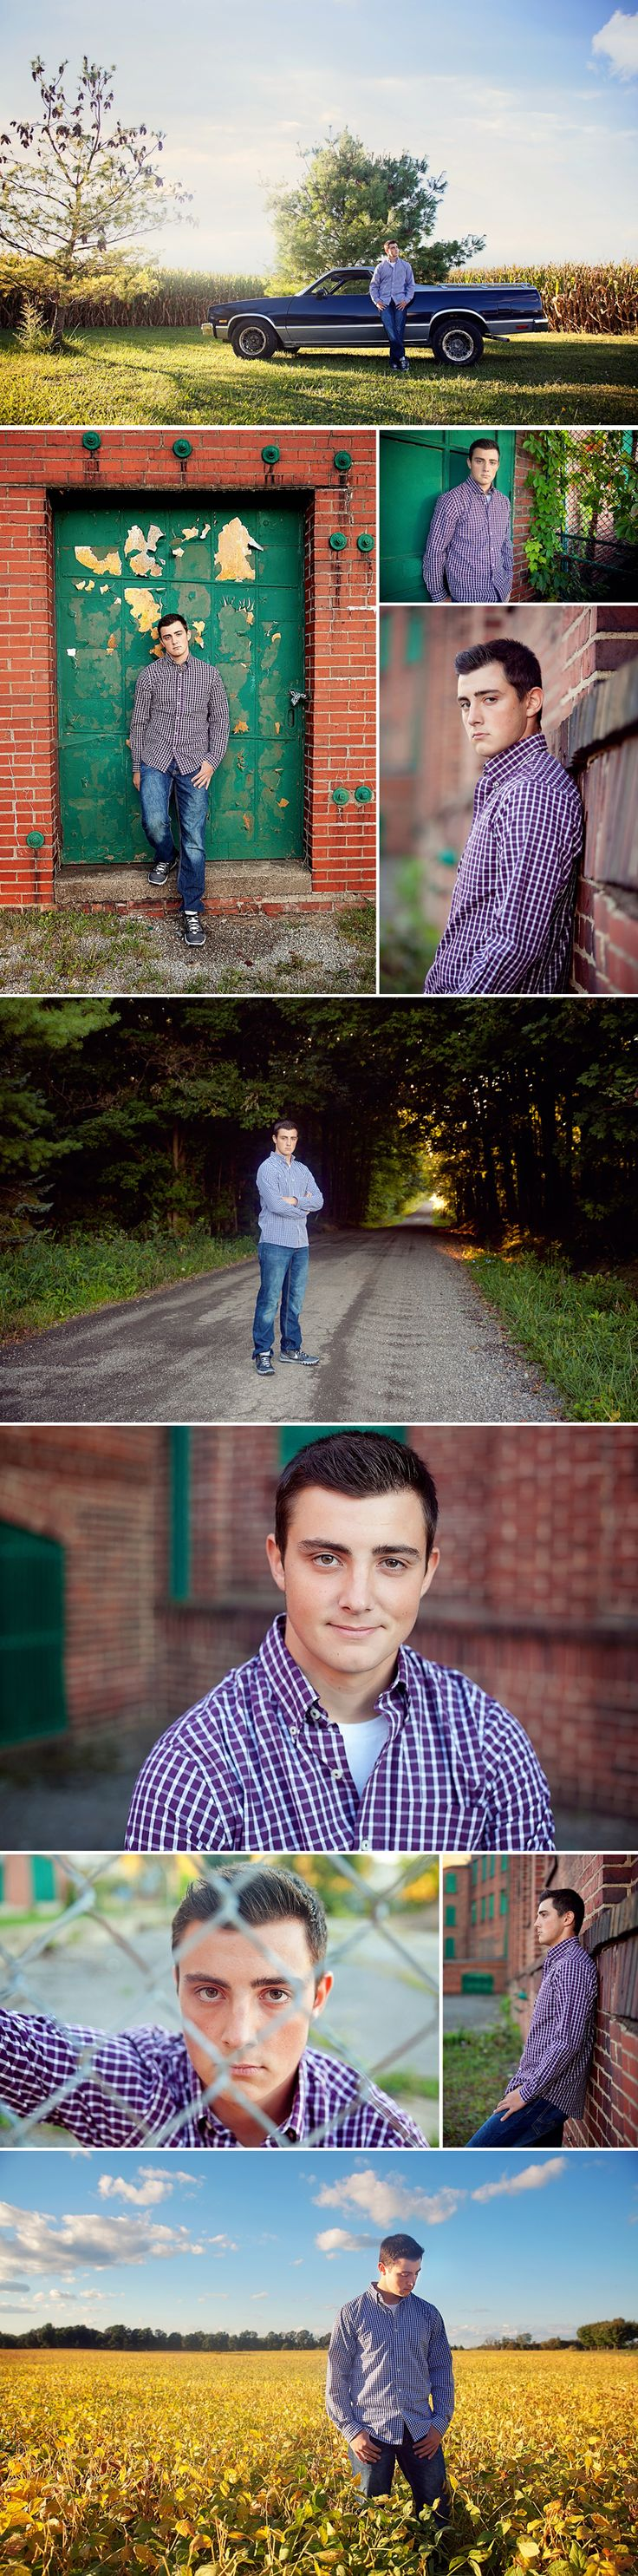 Northeast Ohio High School Senior Boy Photography - The Picture Show